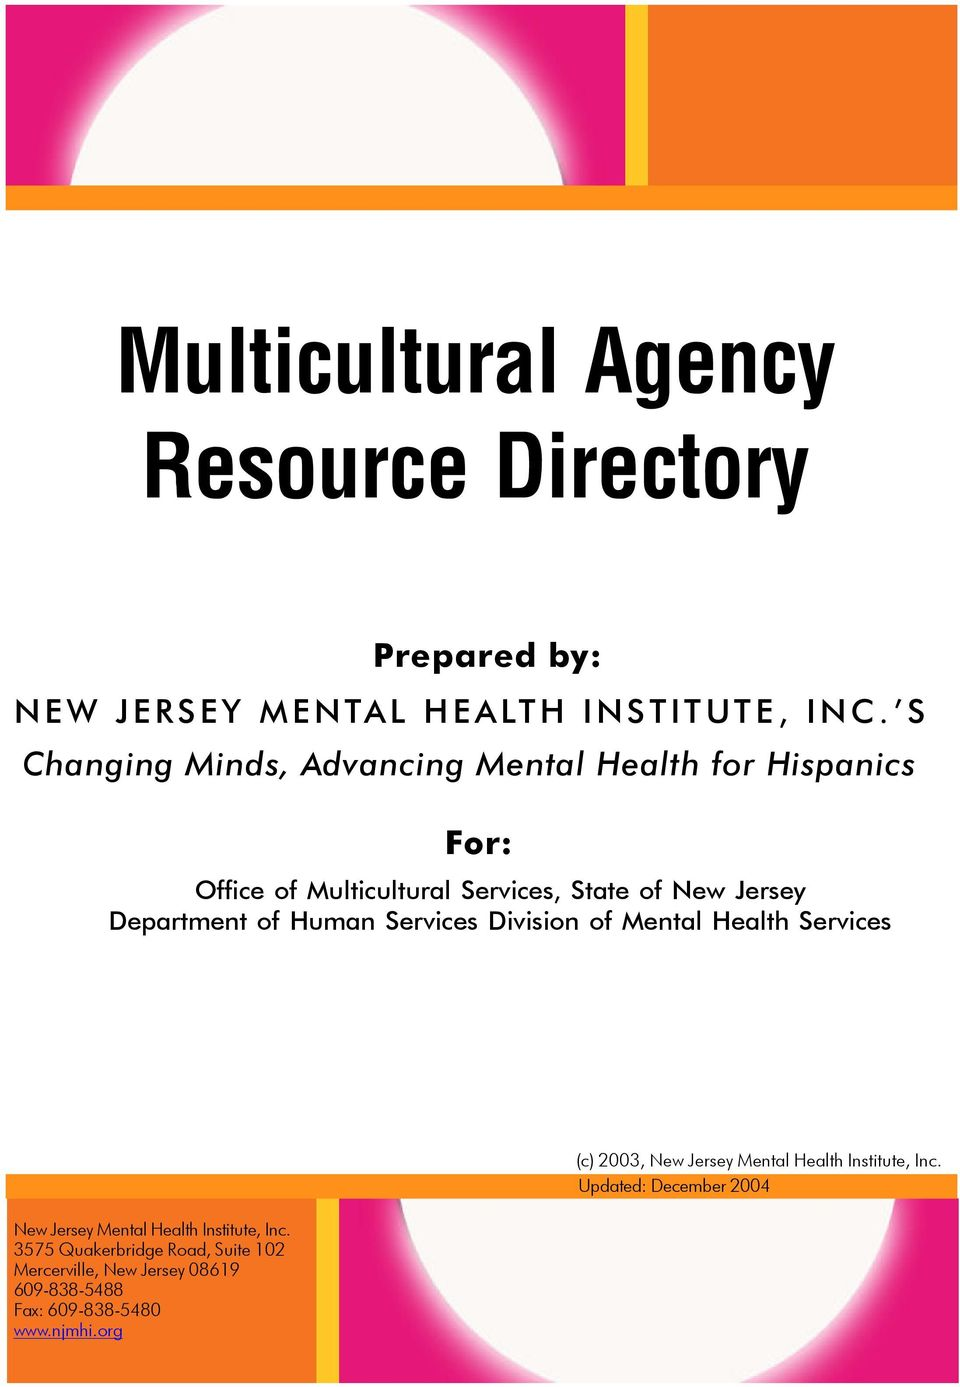 of Human Services Division of Mental Health Services (c) 2003, New Jersey Mental Health Institute, Inc.